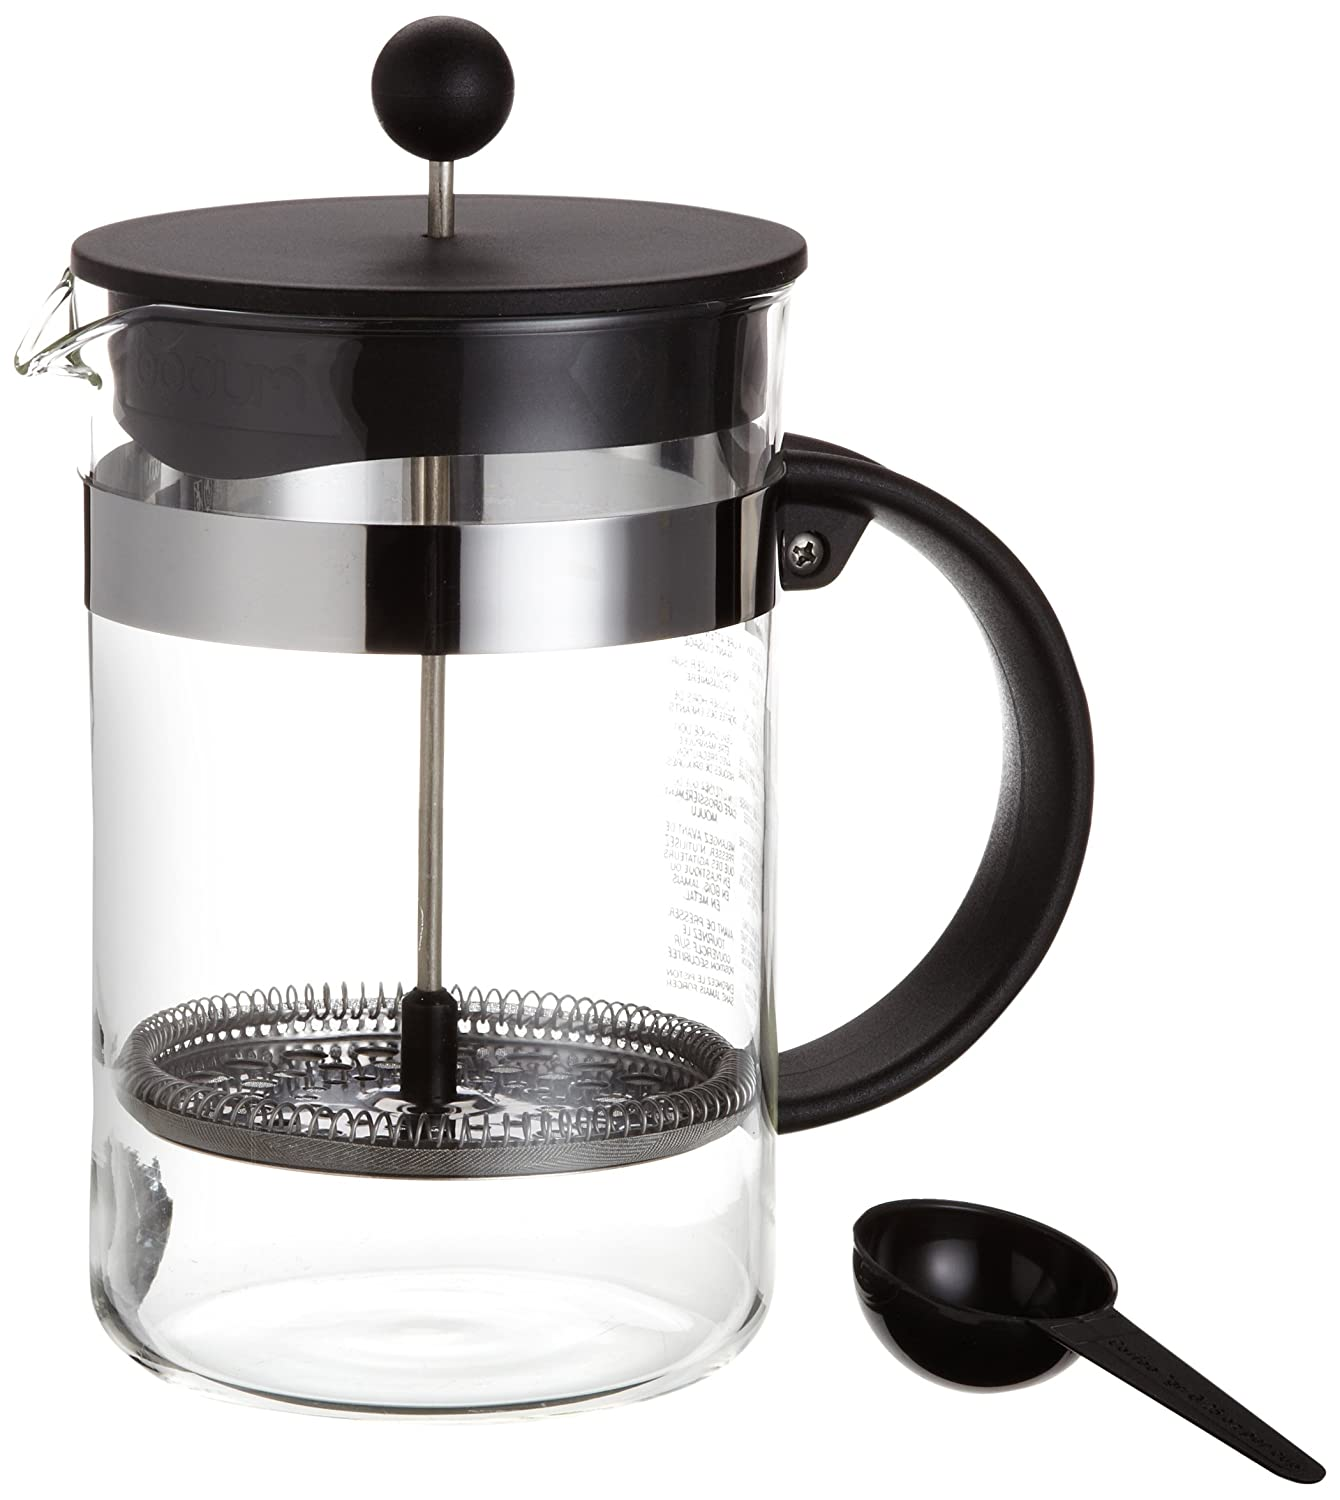 French Press Coffee Maker Images : Large French Press Coffee Makers Top Off My Coffee Please